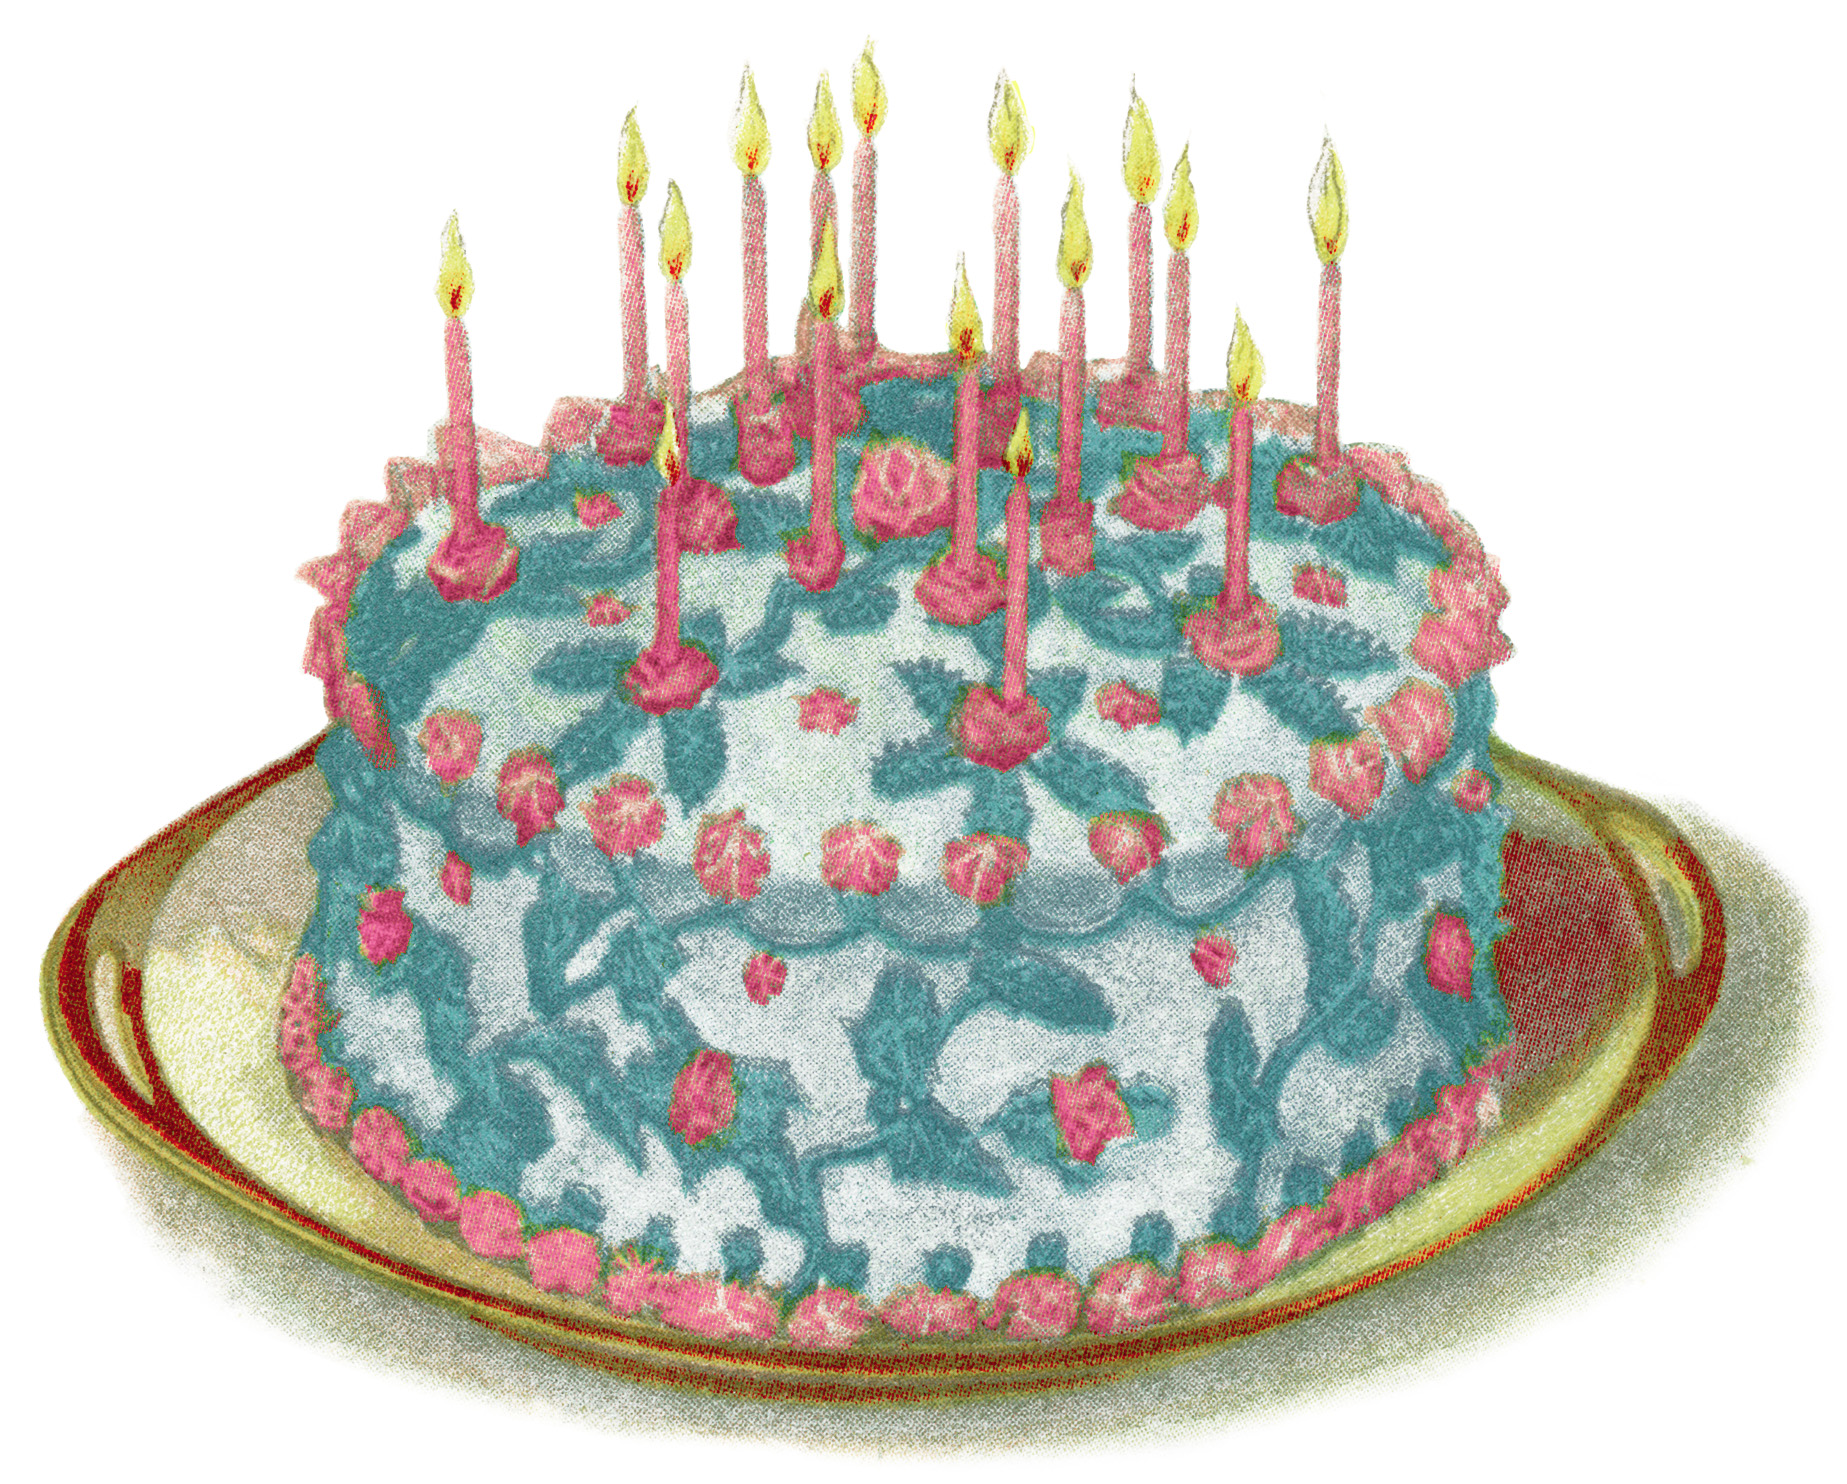 Victorian clipart cake Lovely blue This illustration a